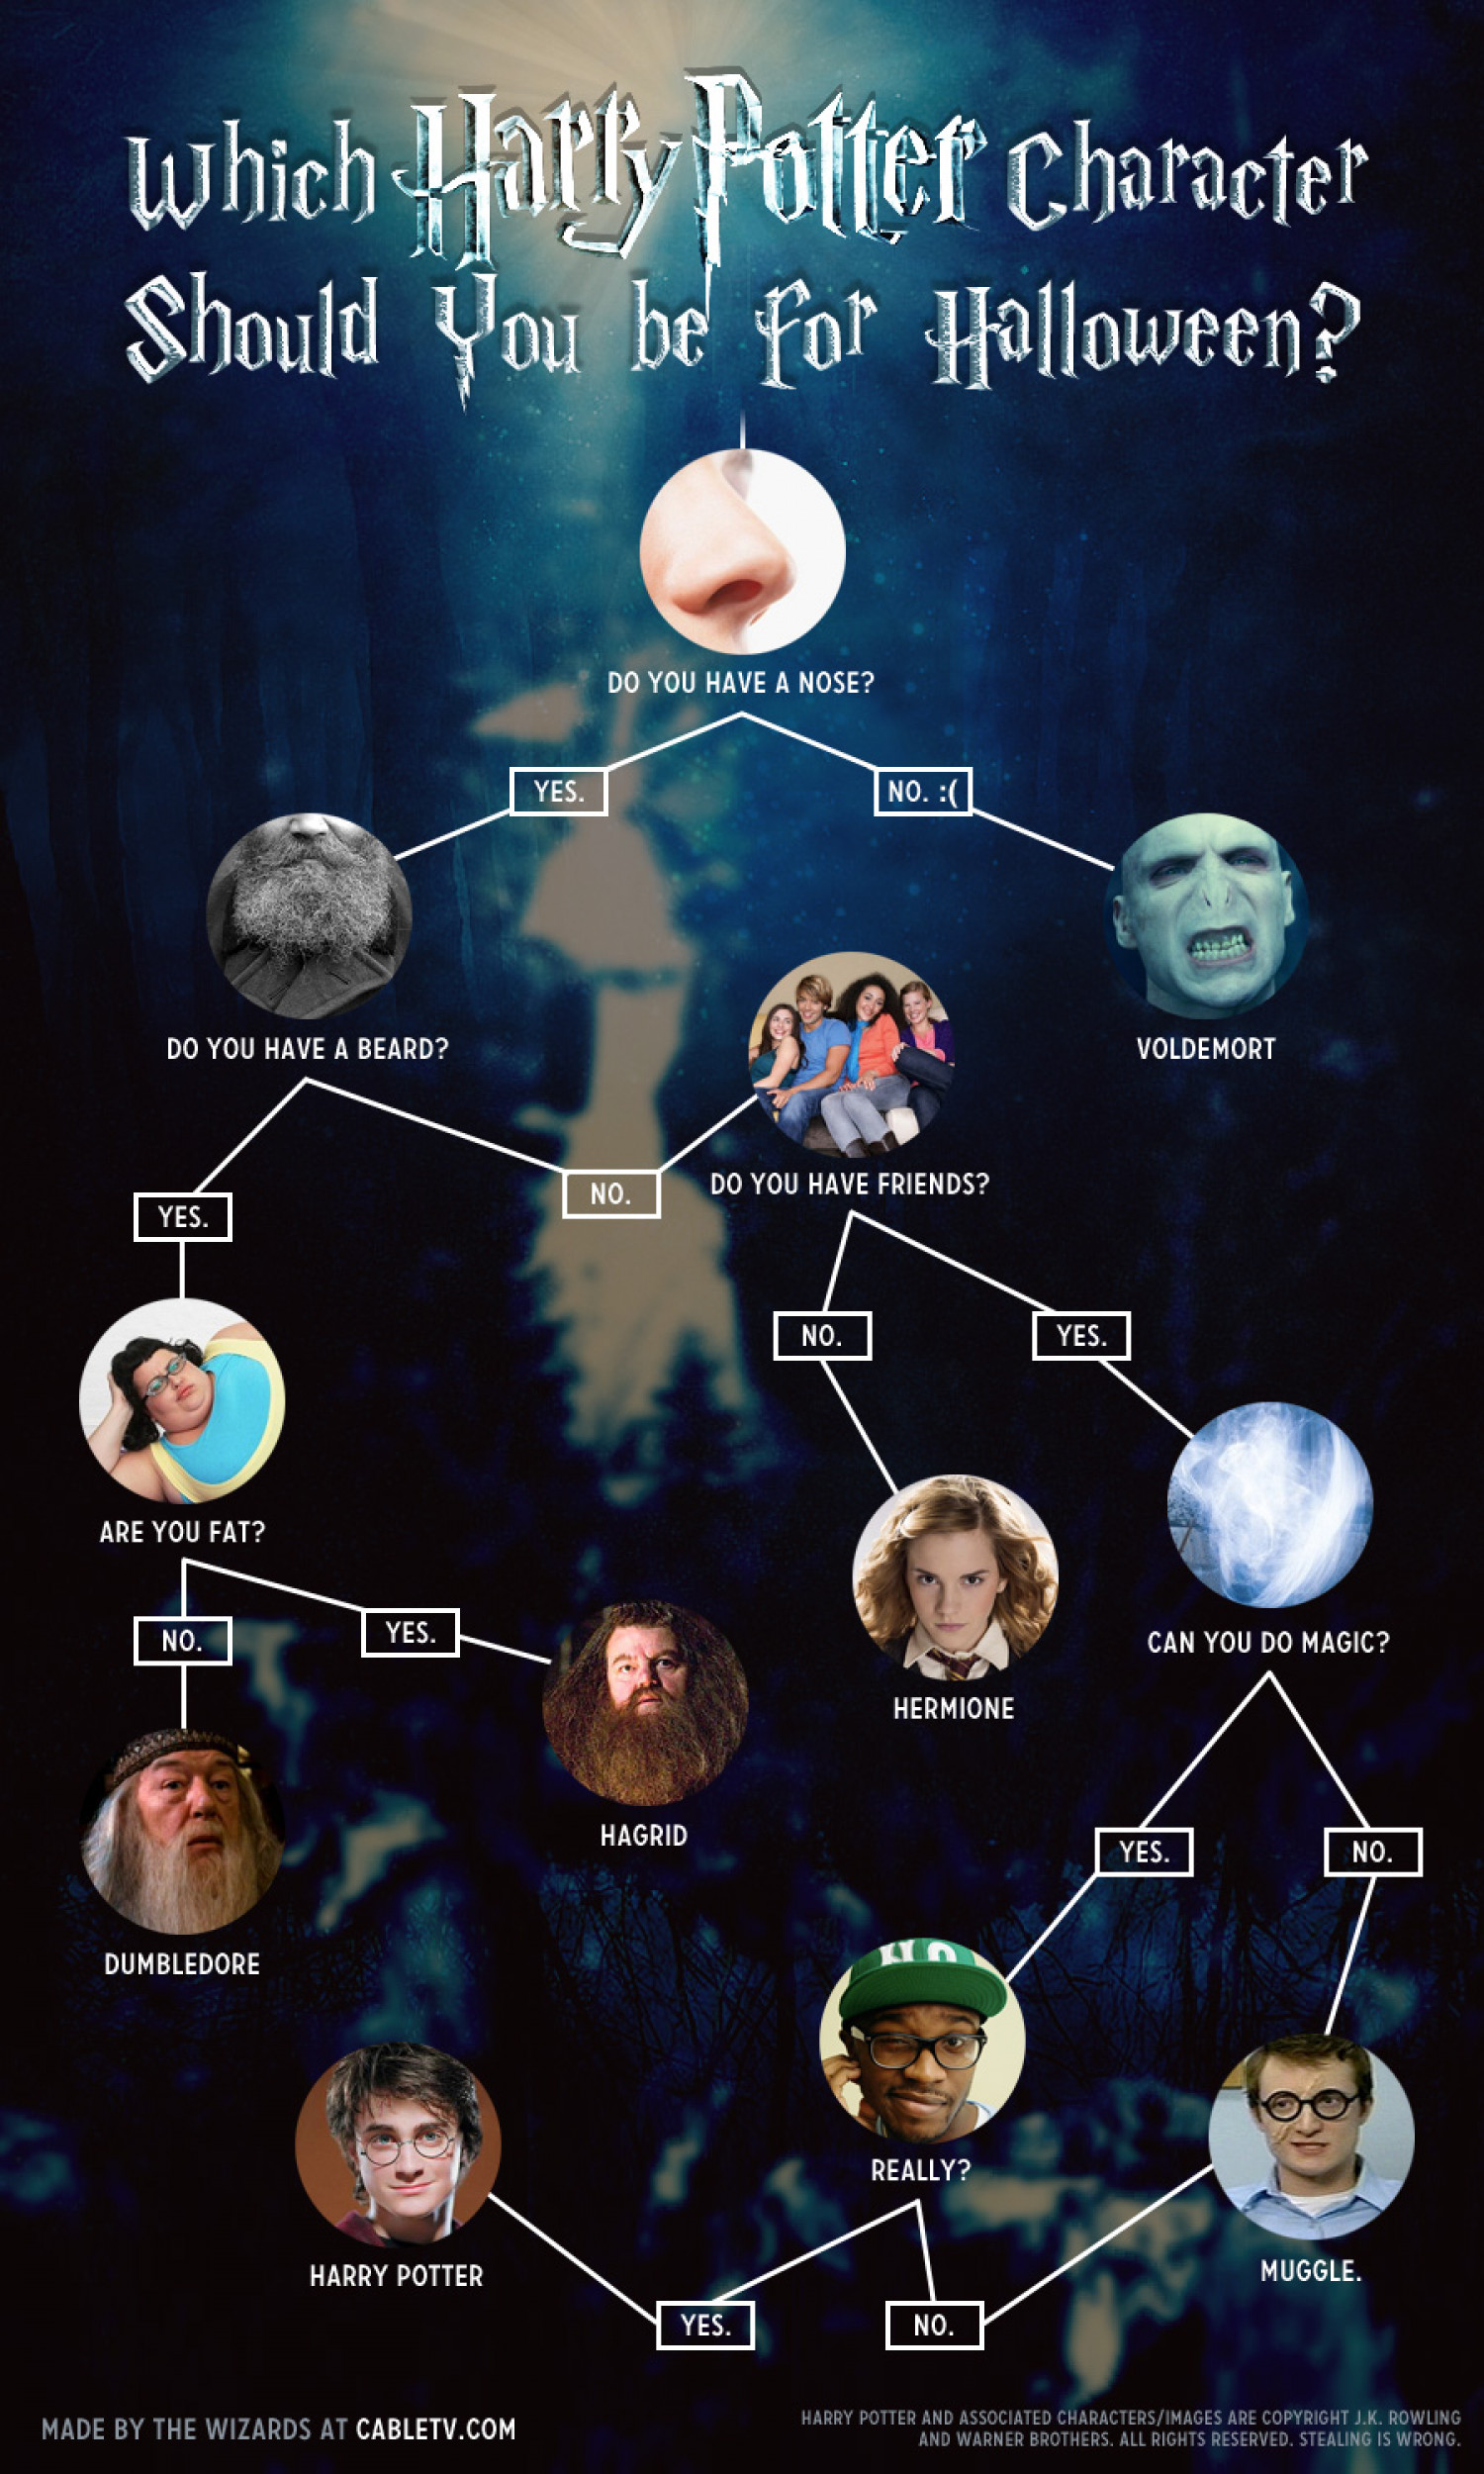 Which Harry Potter Character Should You Be for Halloween? Infographic